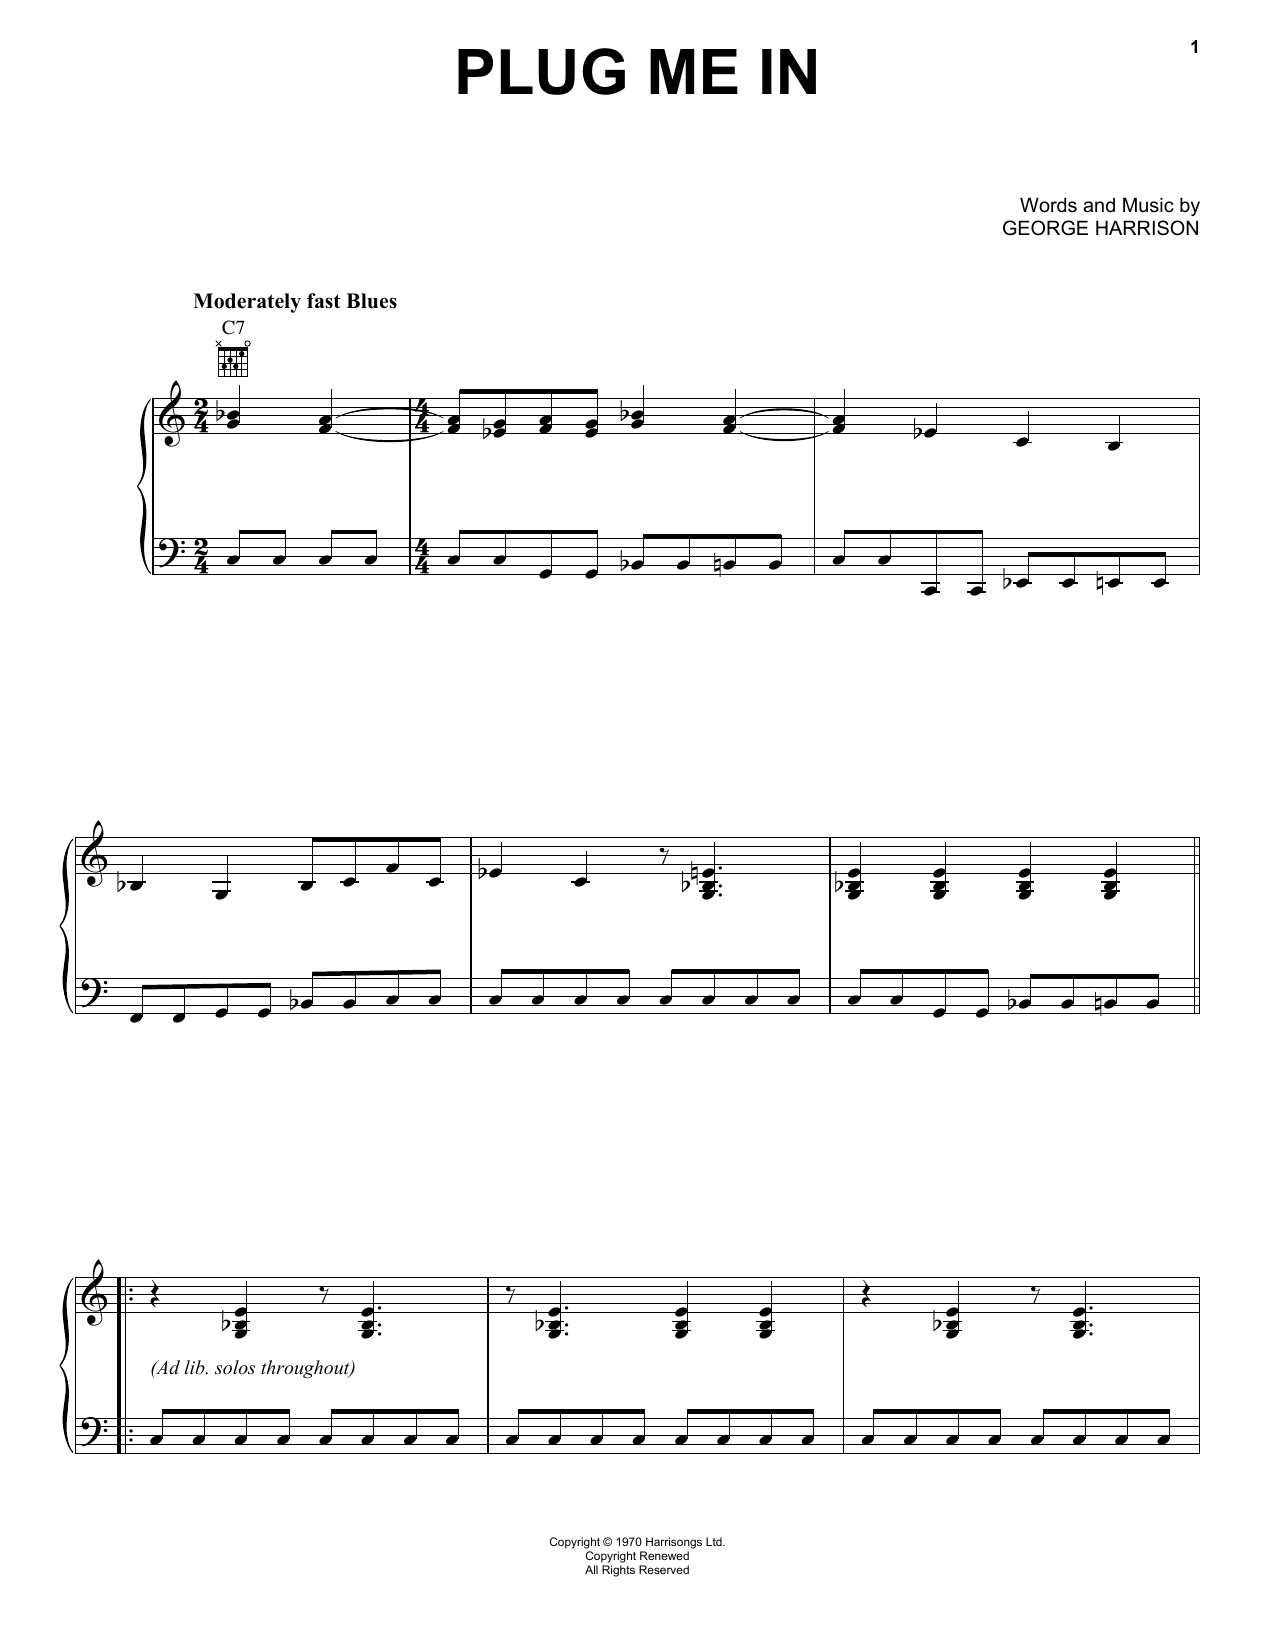 Download George Harrison 'Plug Me In' Digital Sheet Music Notes & Chords and start playing in minutes